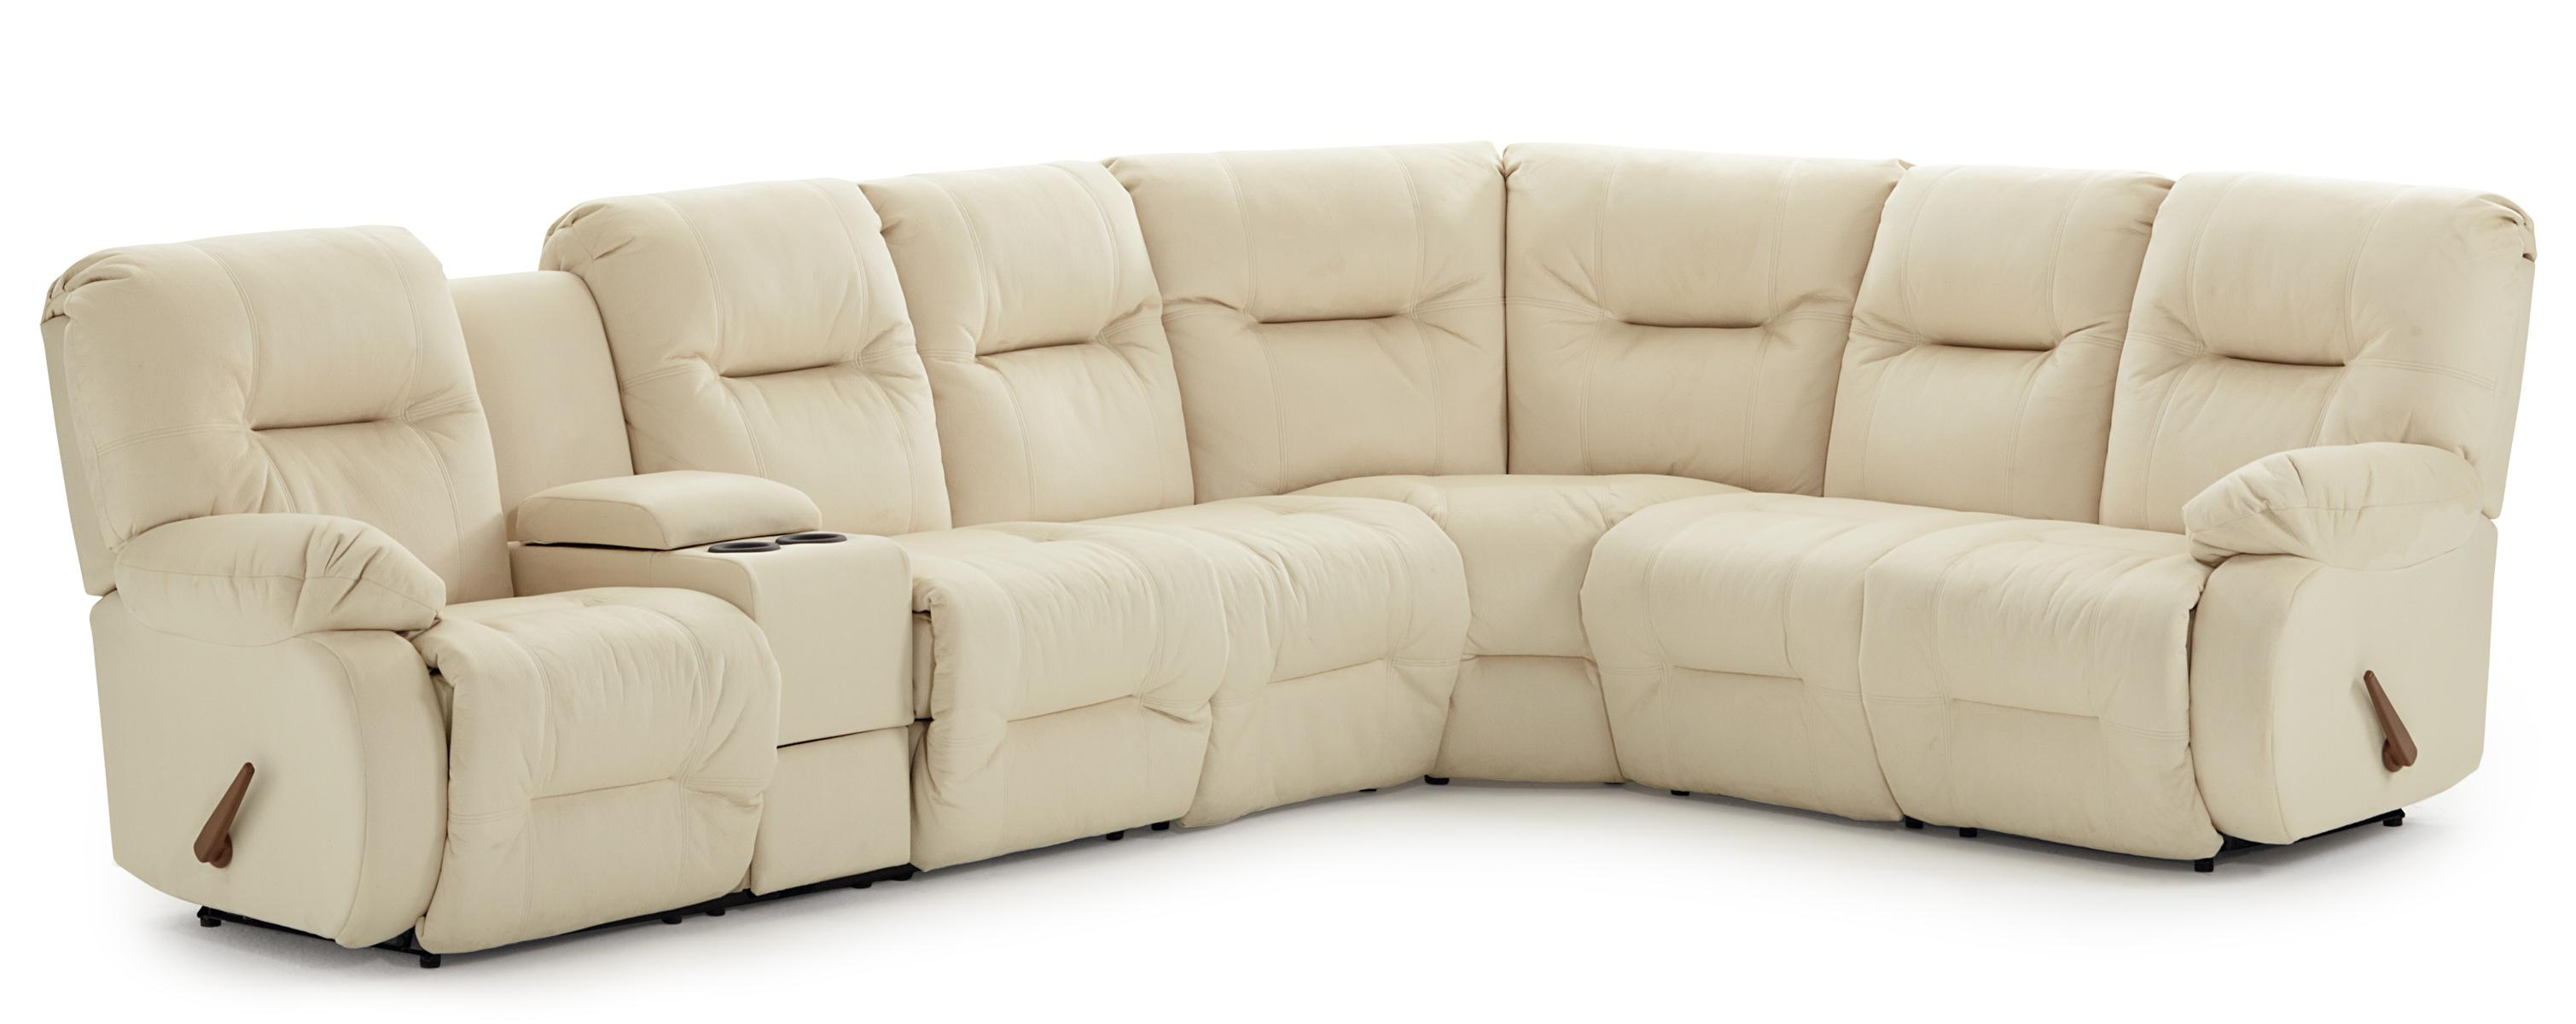 motorized sectional sofa wood frame singapore casual power reclining with storage console